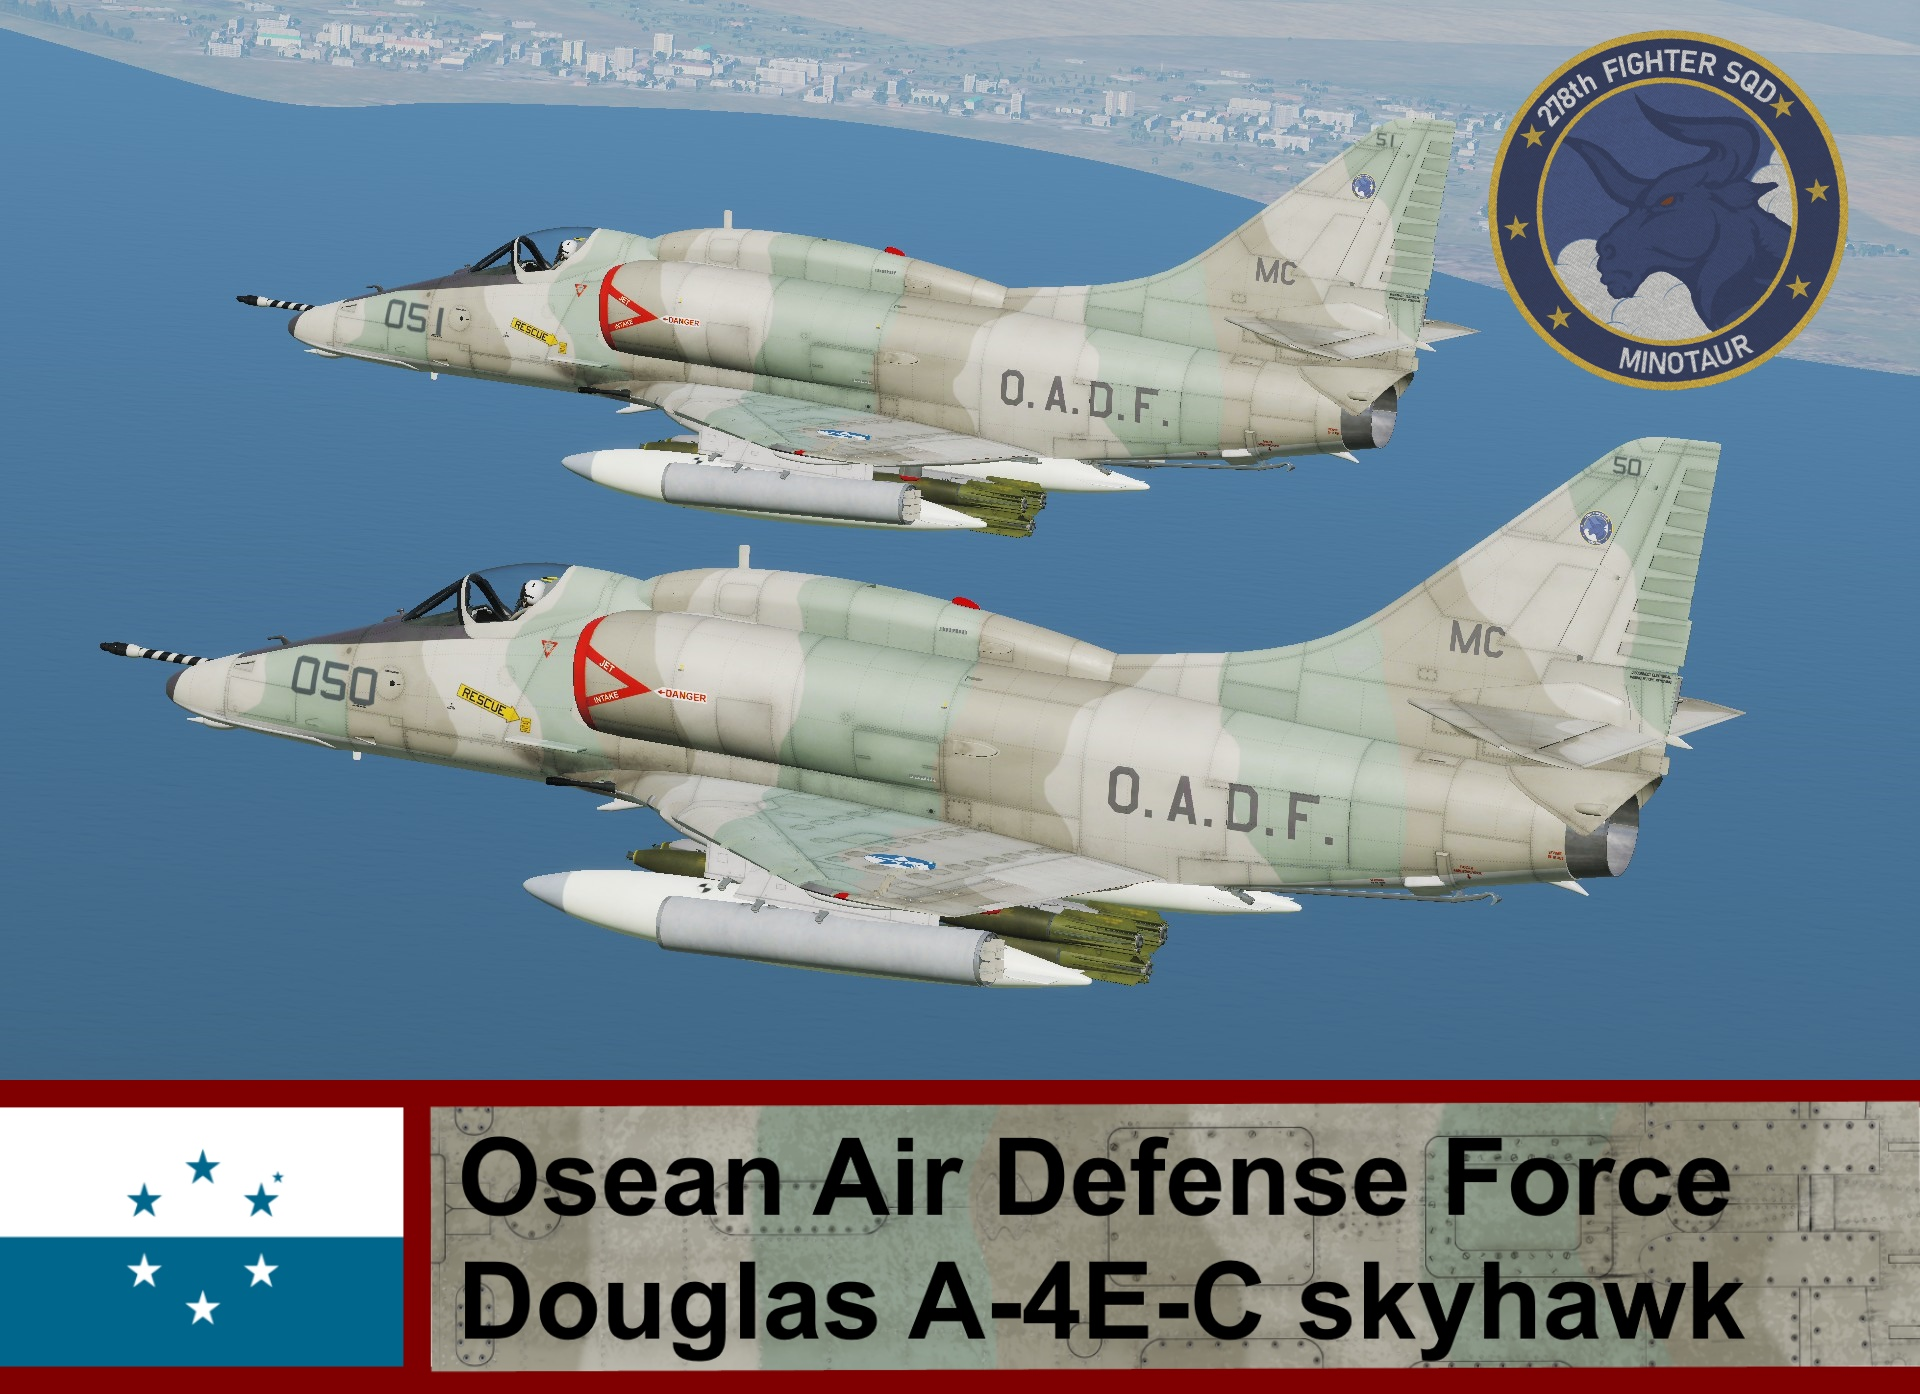 Osean Air Defense Force A-4E-C Skyhawk - Ace Combat (278th TFS)